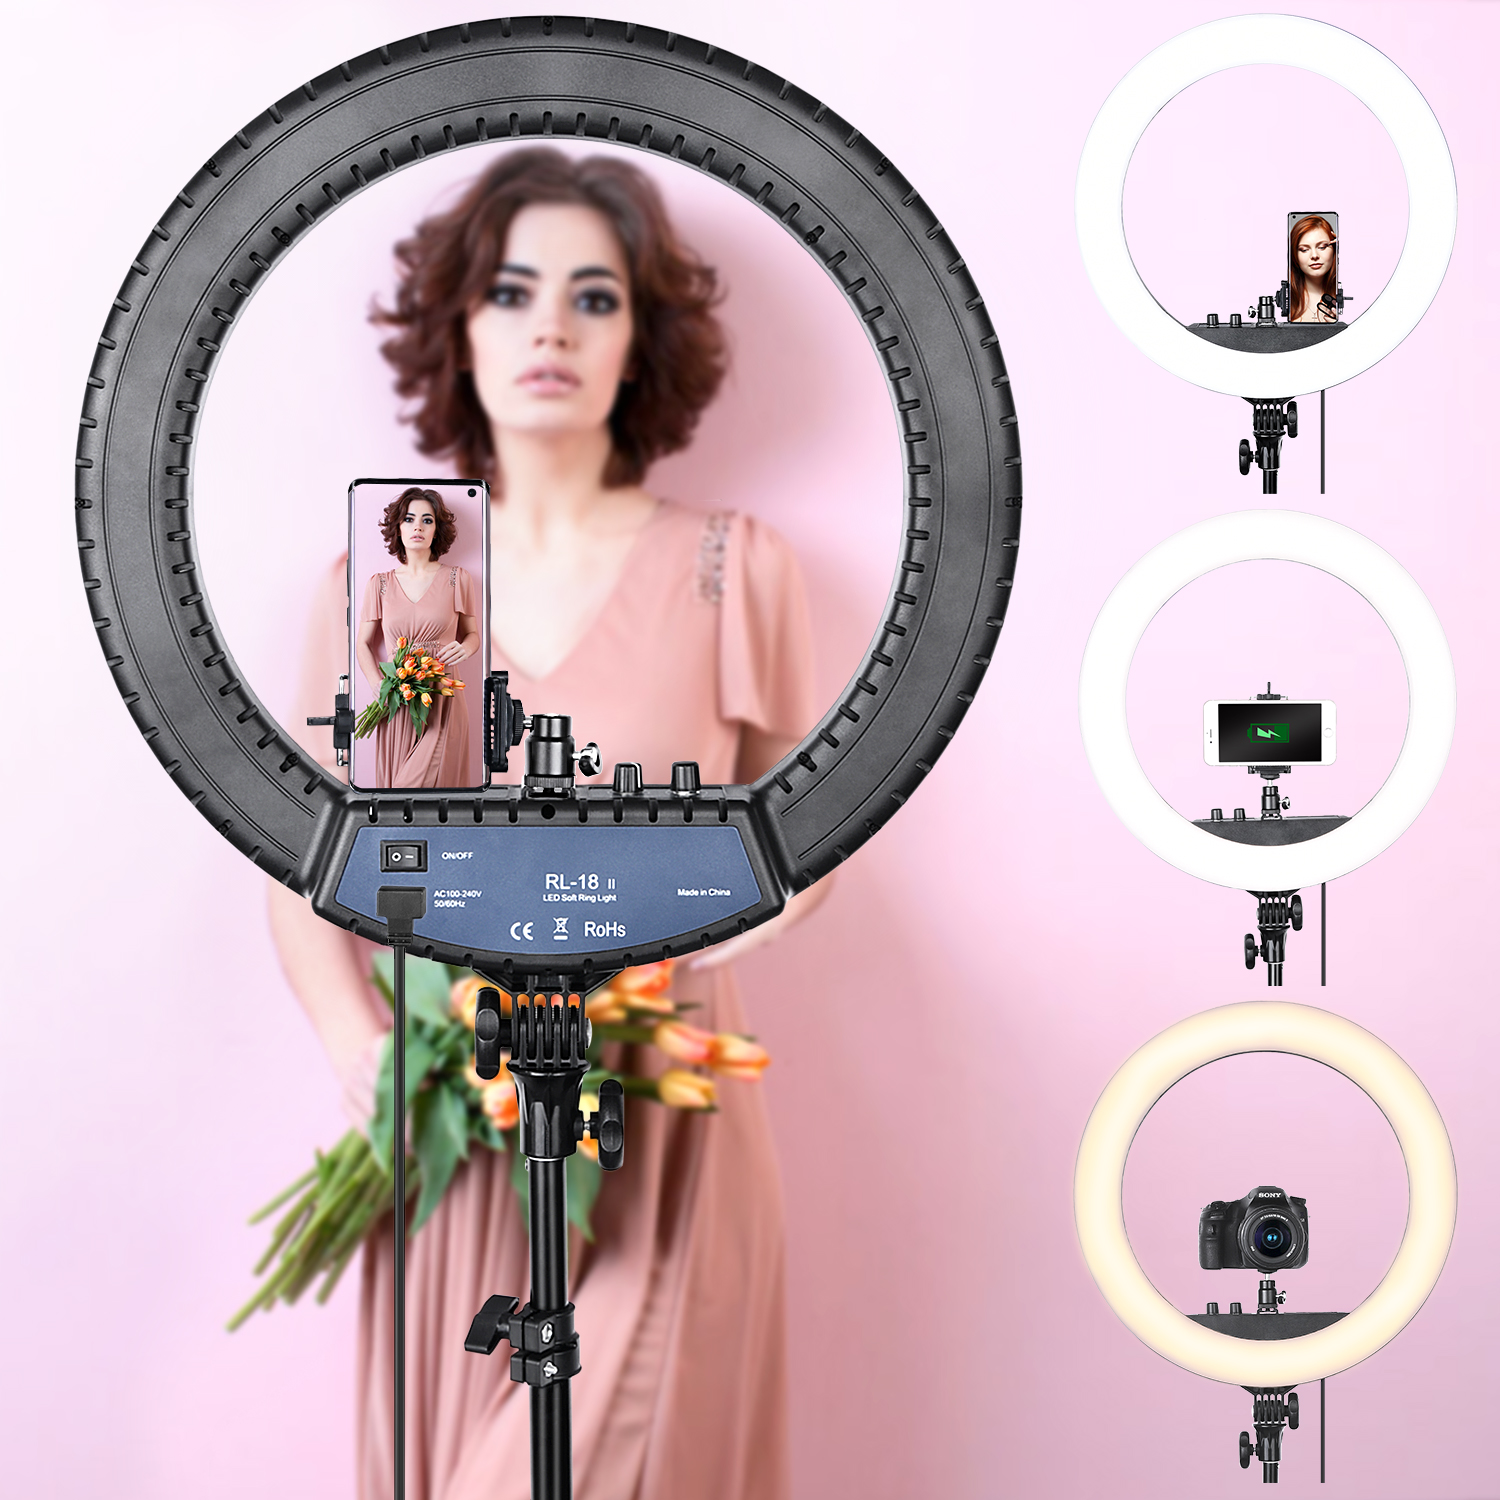 H5743760f44f44fb3894aac9465a54ae92 FOSOTO RL-18II Ring Lamp 18 Inch Photographic Lighting Ringlight 512Pcs Led Ring Light With Tripod Stand For Camera Phone Makeup